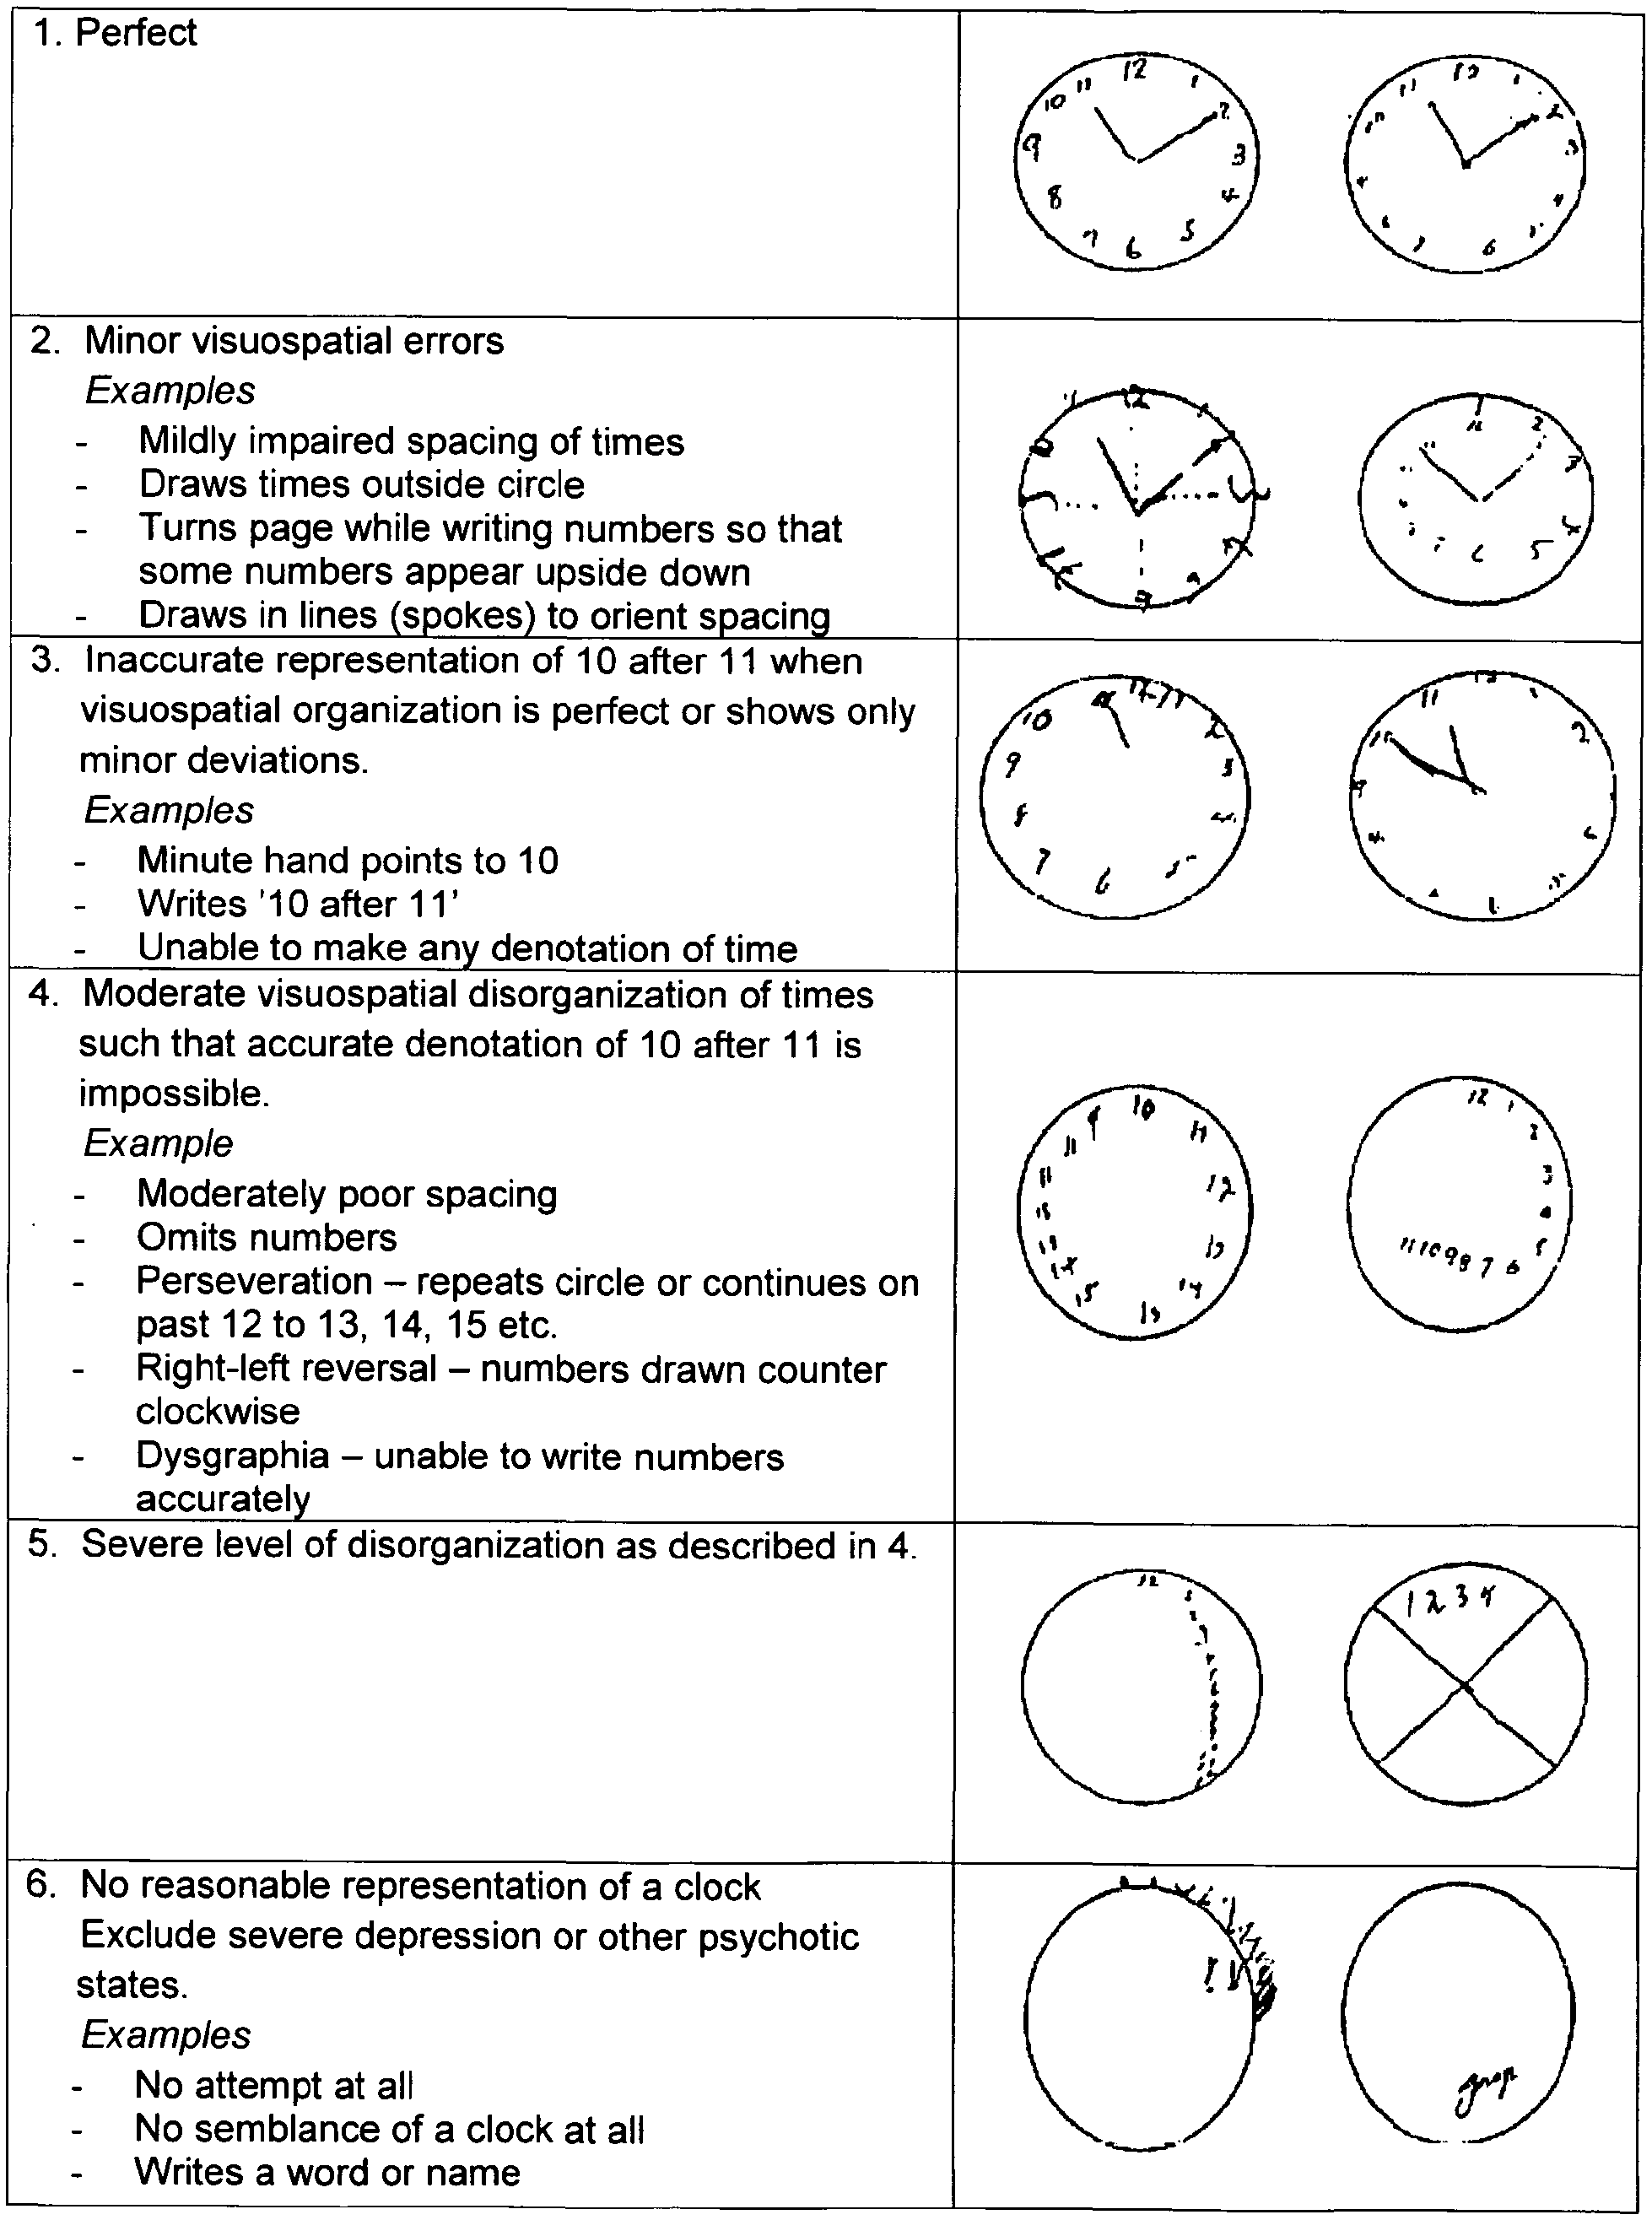 The Clock Drawing Test And Dementia